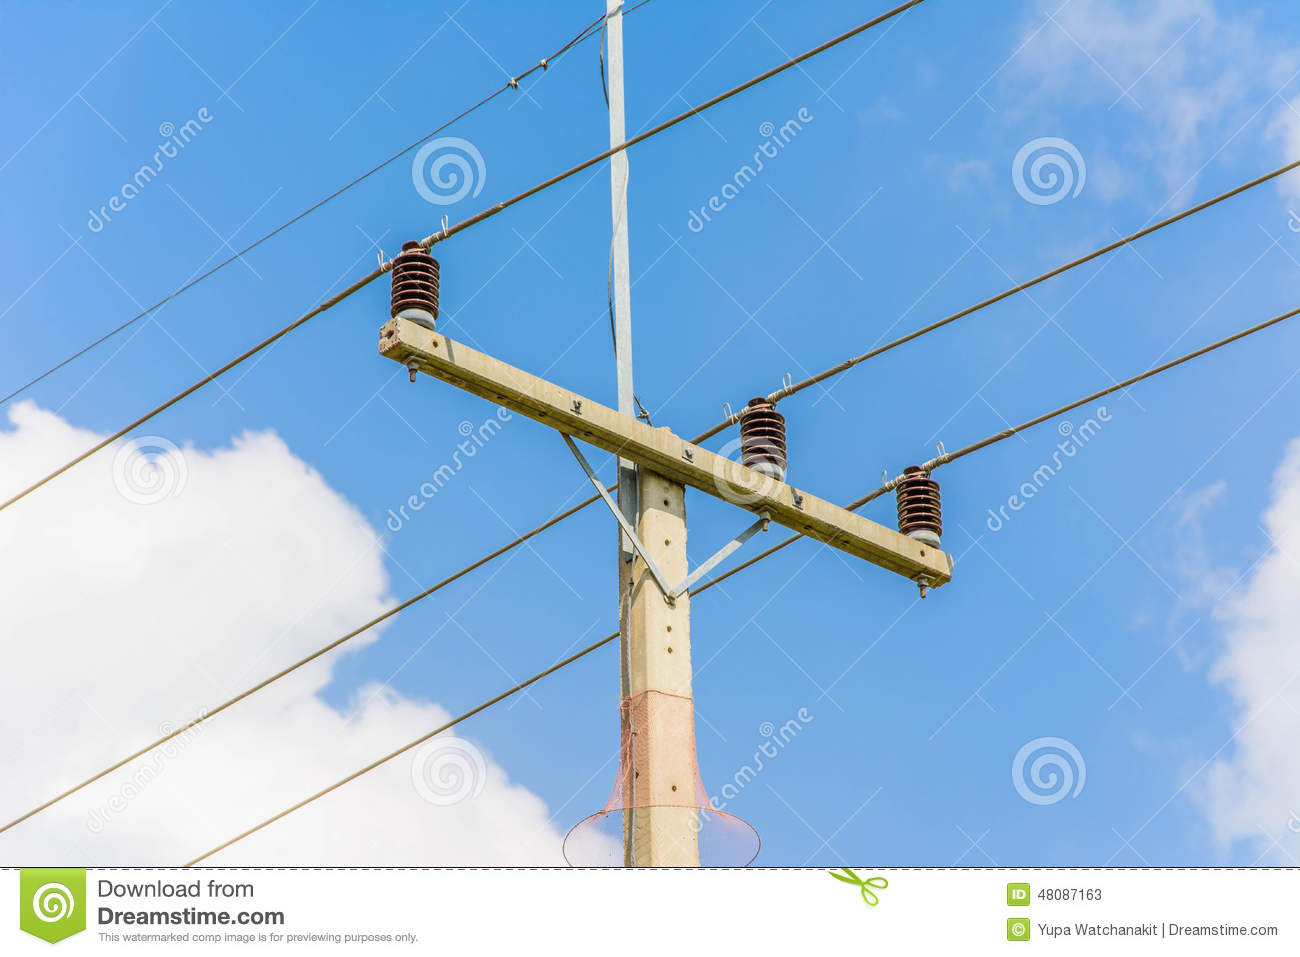 Electric pole close up stock image  Image of distance - 48087163